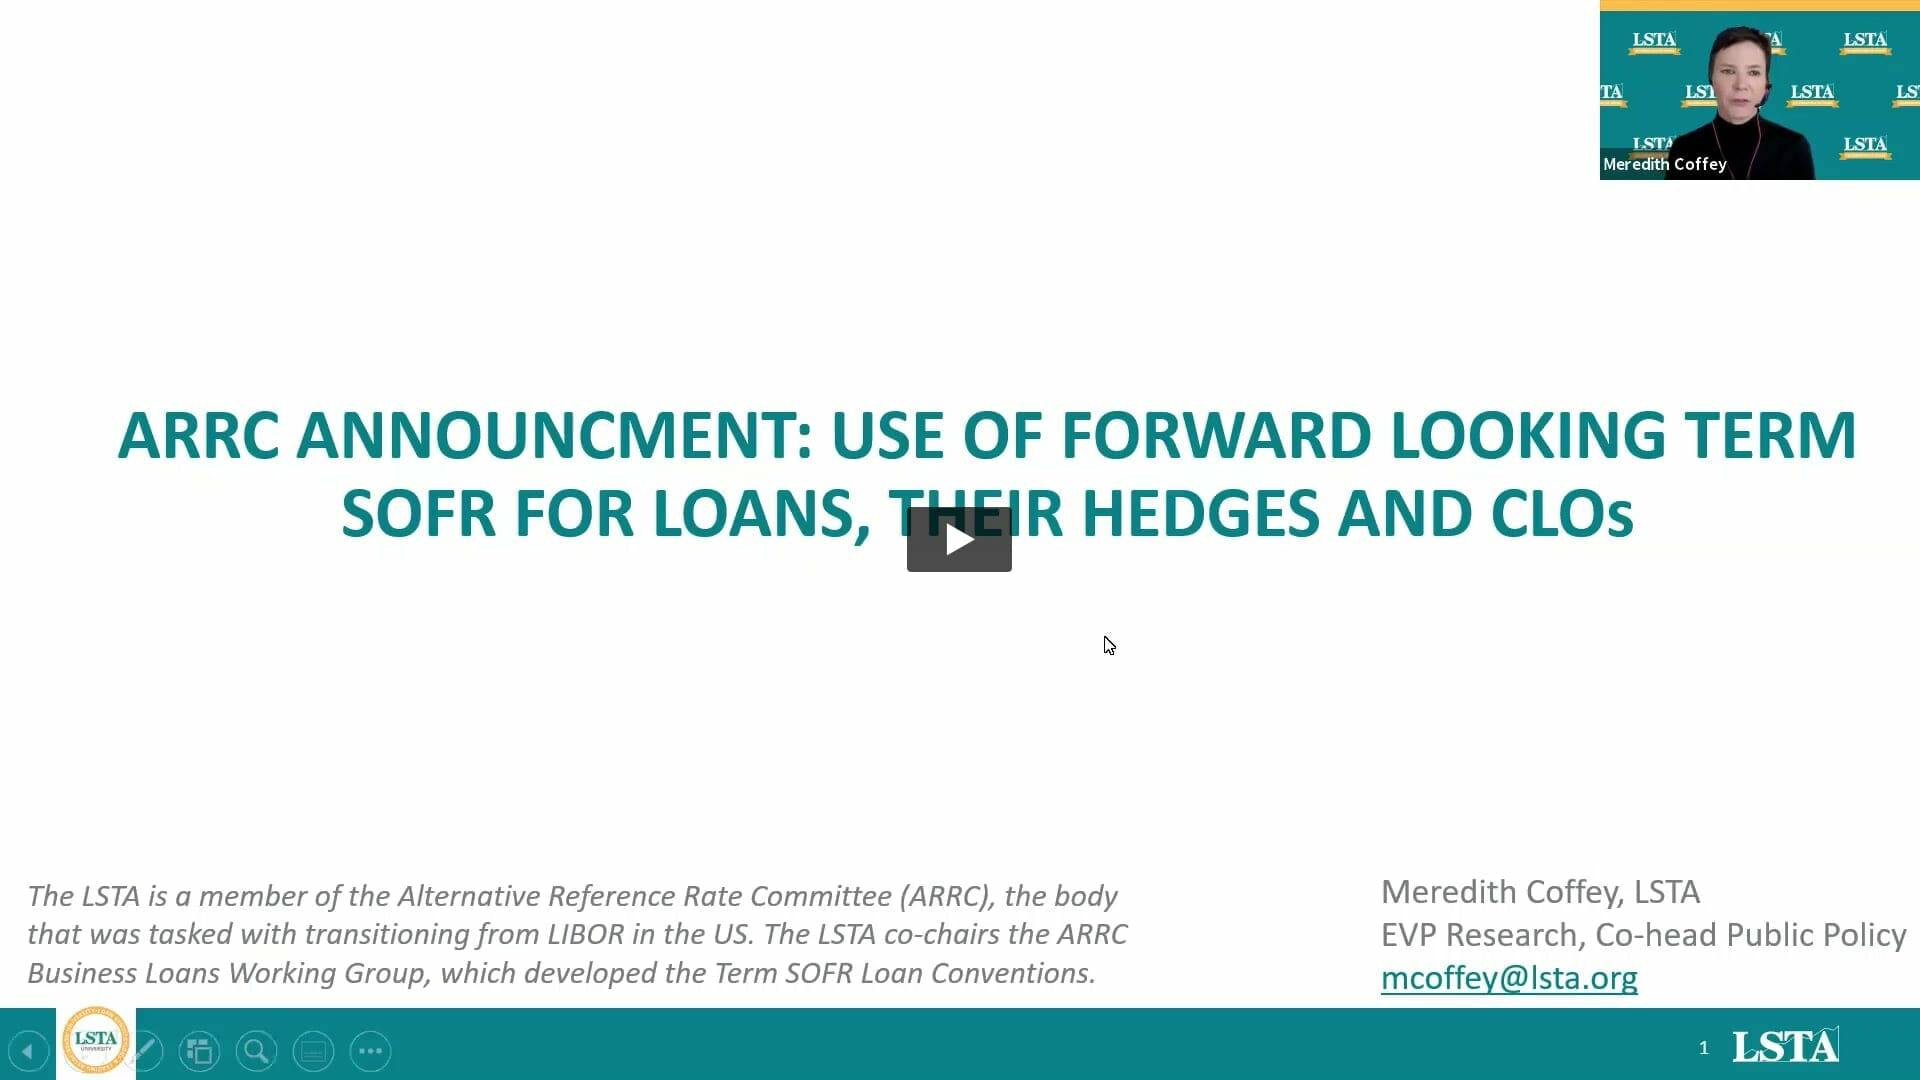 July 21, 2021 ARRC Announcement: Use of Forward Looking Term SOFR for Loans, Their Hedges and CLOs – Podcast